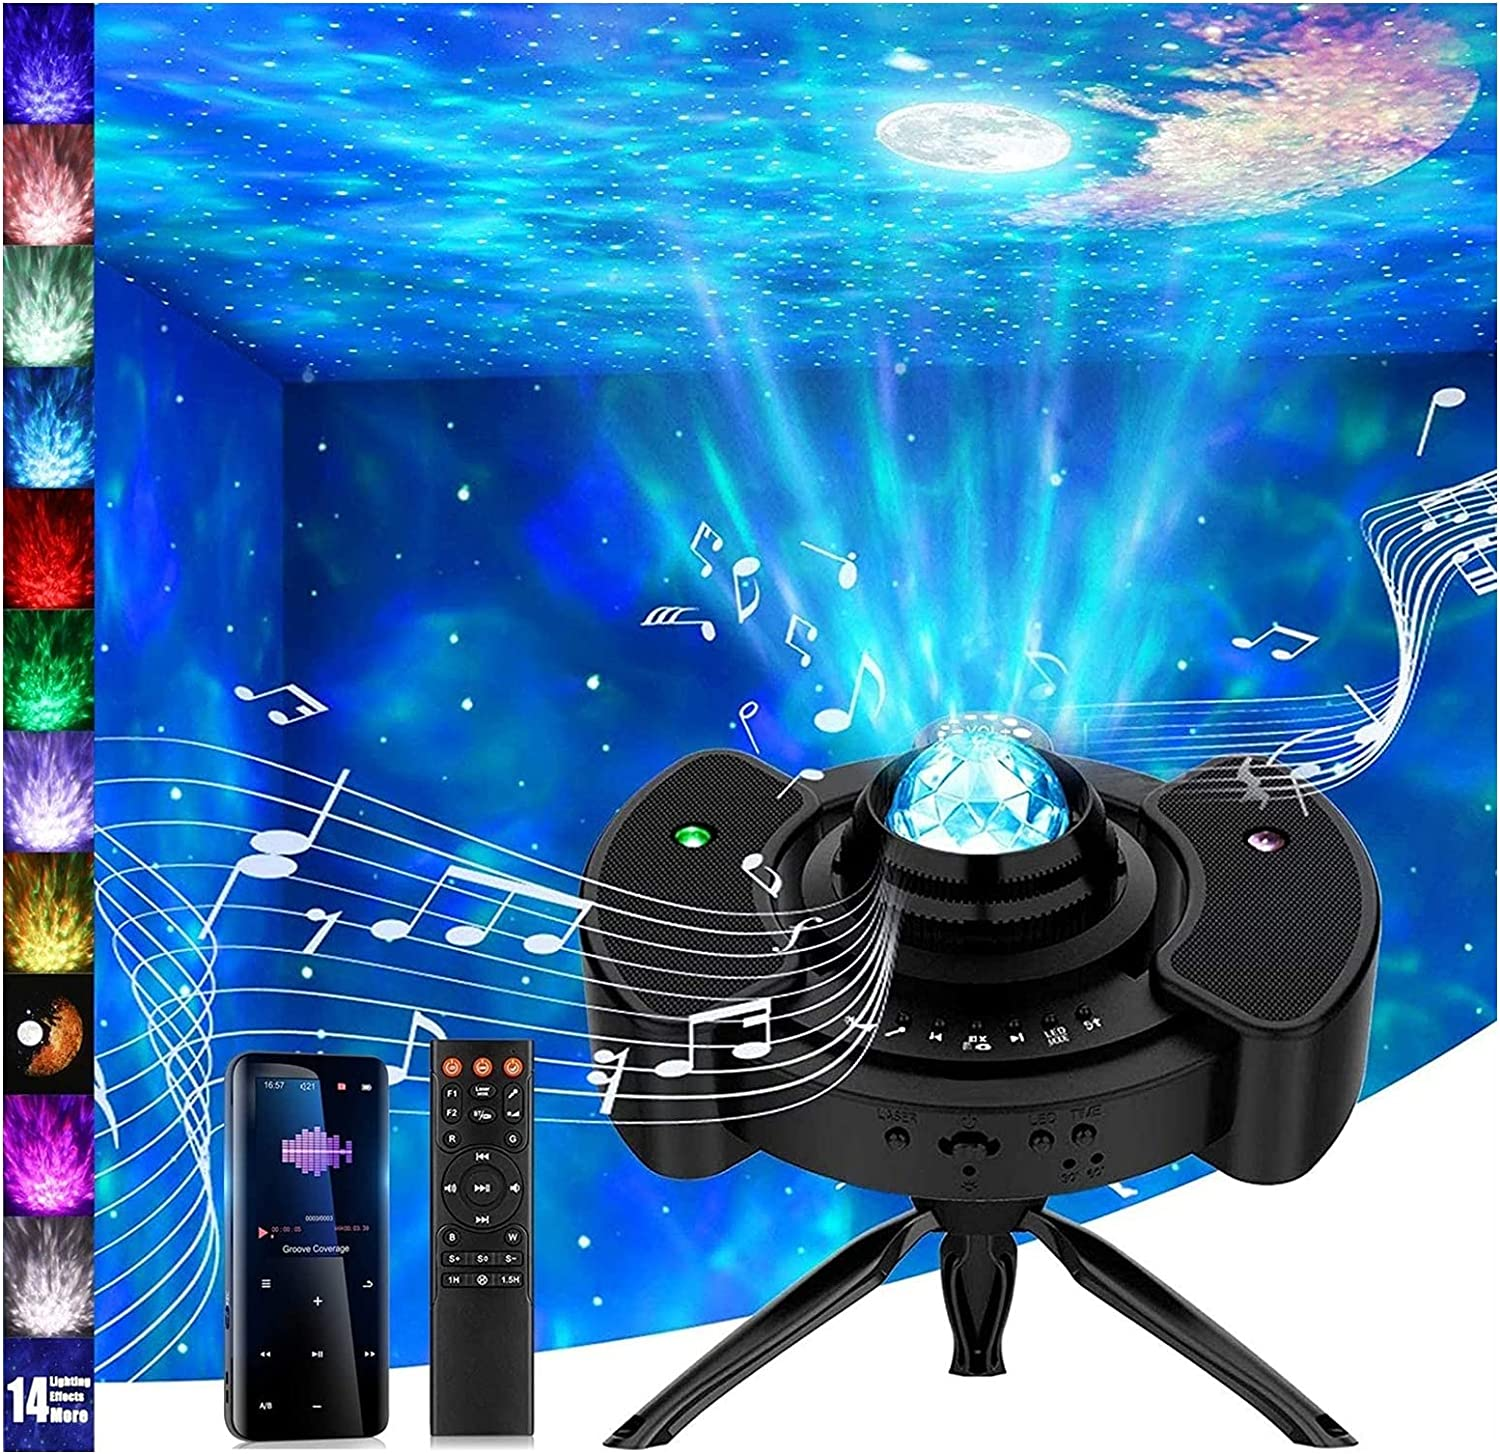 star projector Galaxy OFFicial shop Projector 4 Oce 1 Kids in OFFicial site Star